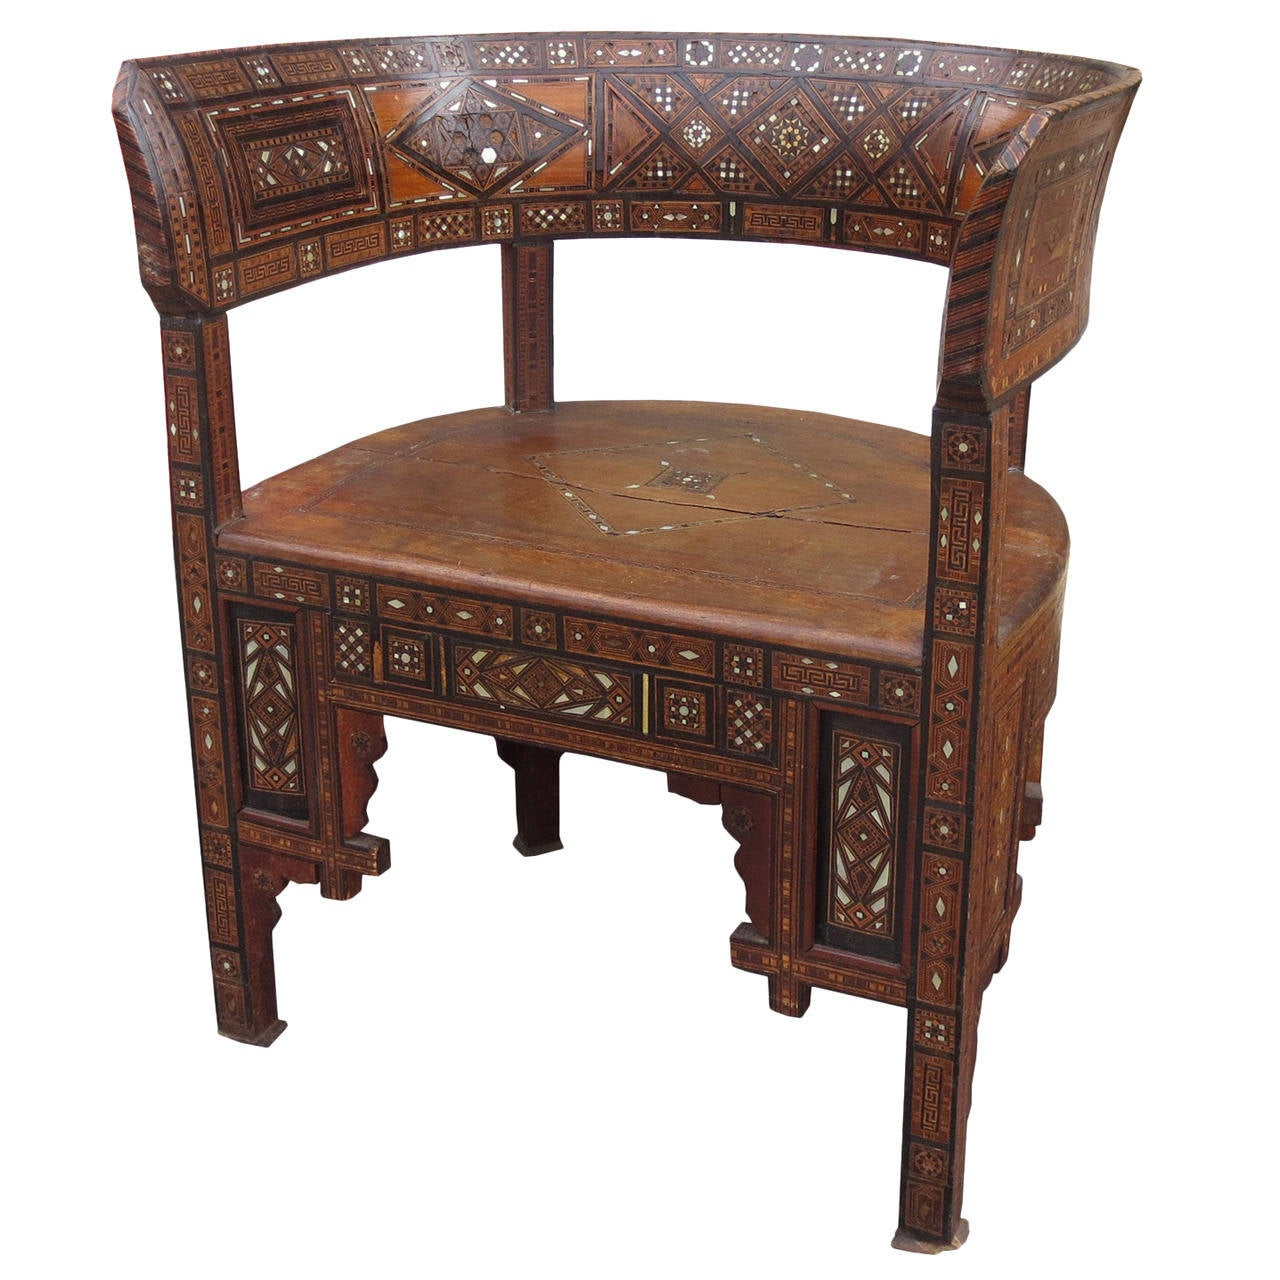 Antique barrel chair - 19th Century Syrian Barrel Chair Exotic Wood Circa 1890 1